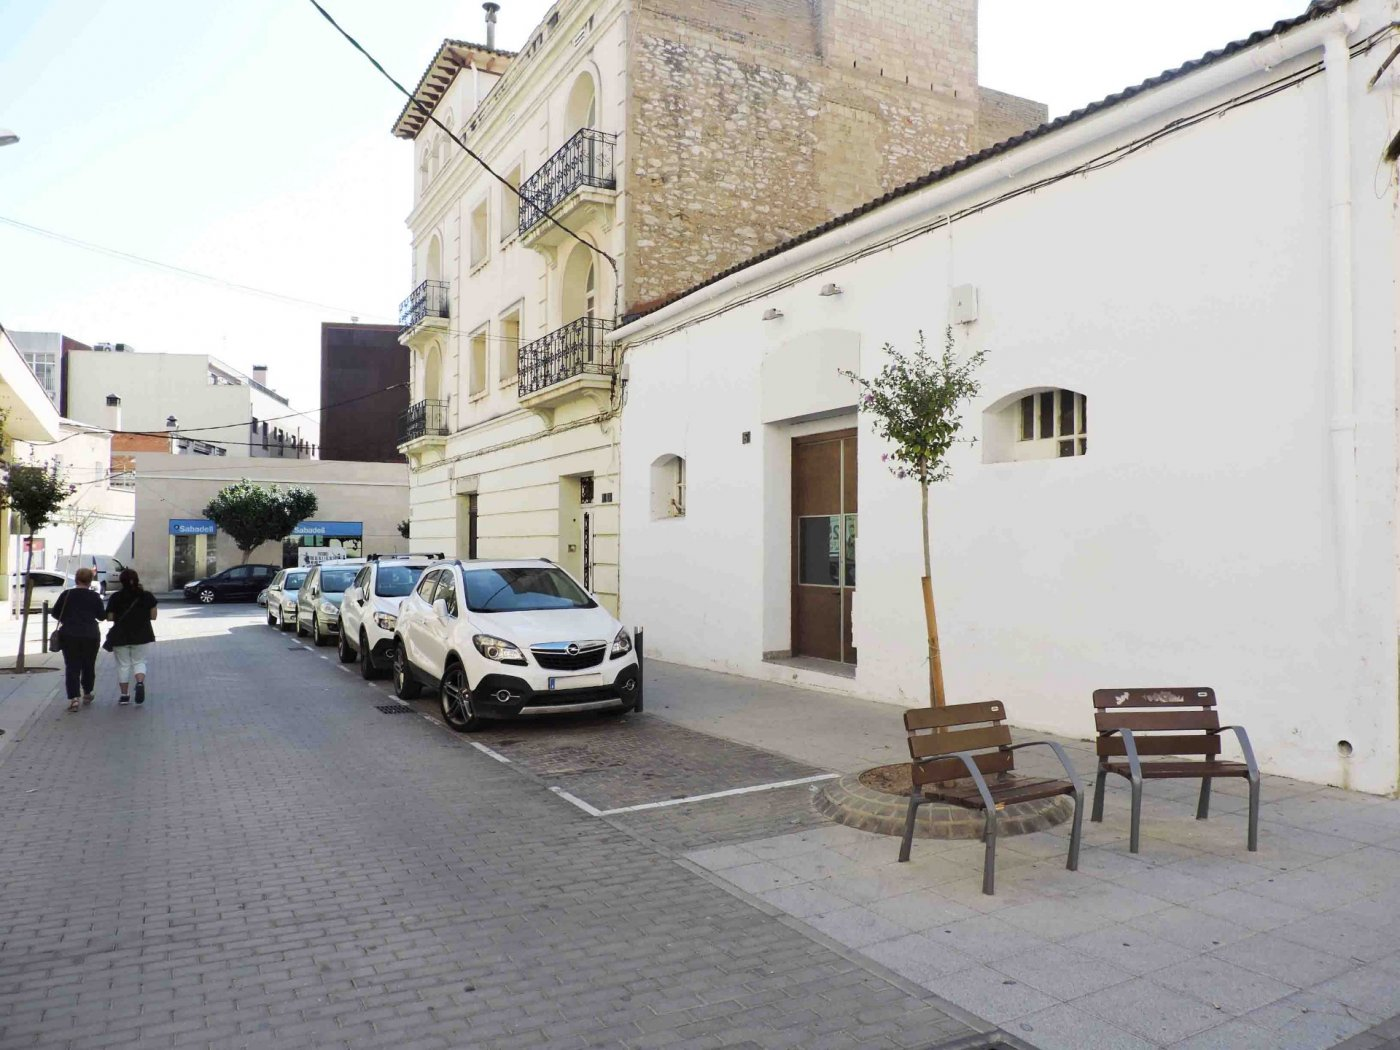 Rent Business premise  Calle jardi, 1. Local de grandes dimensiones